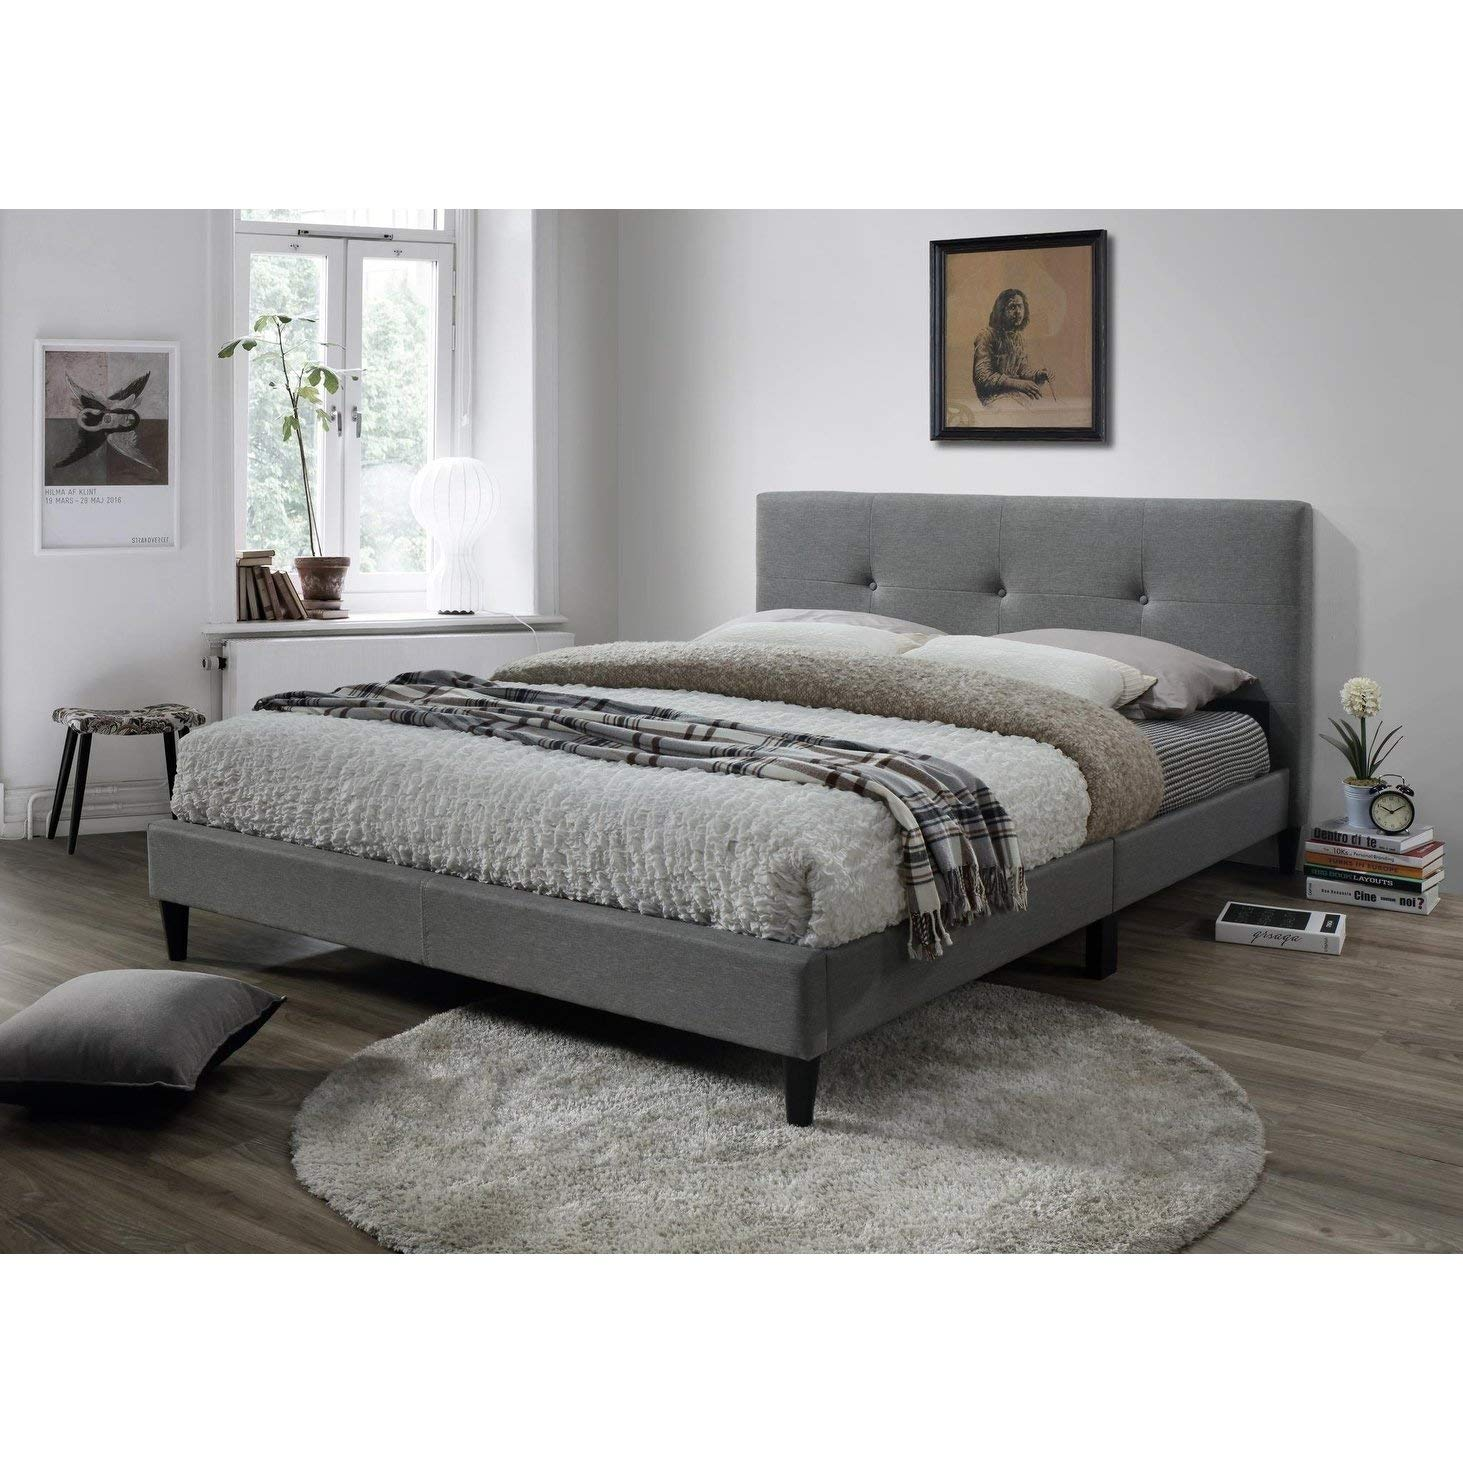 Amazon com overstock lyke home jackson tufted gray platform bed twin kitchen dining